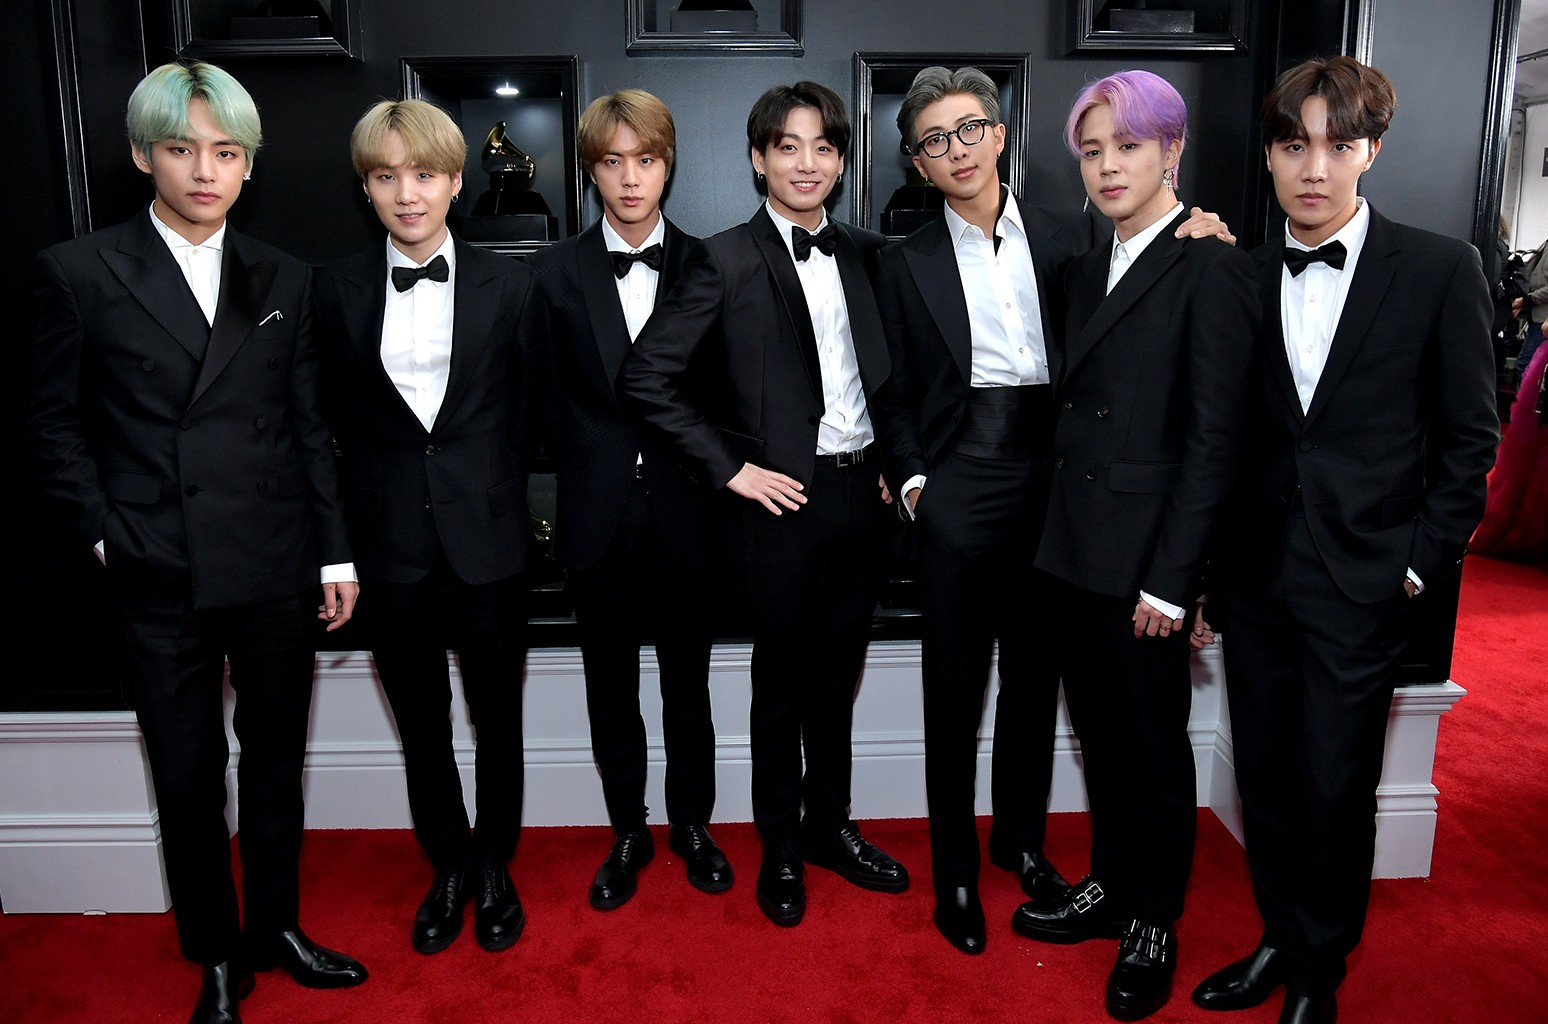 grammys 2019 photos from the red carpet billboard grammys 2019 photos from the red